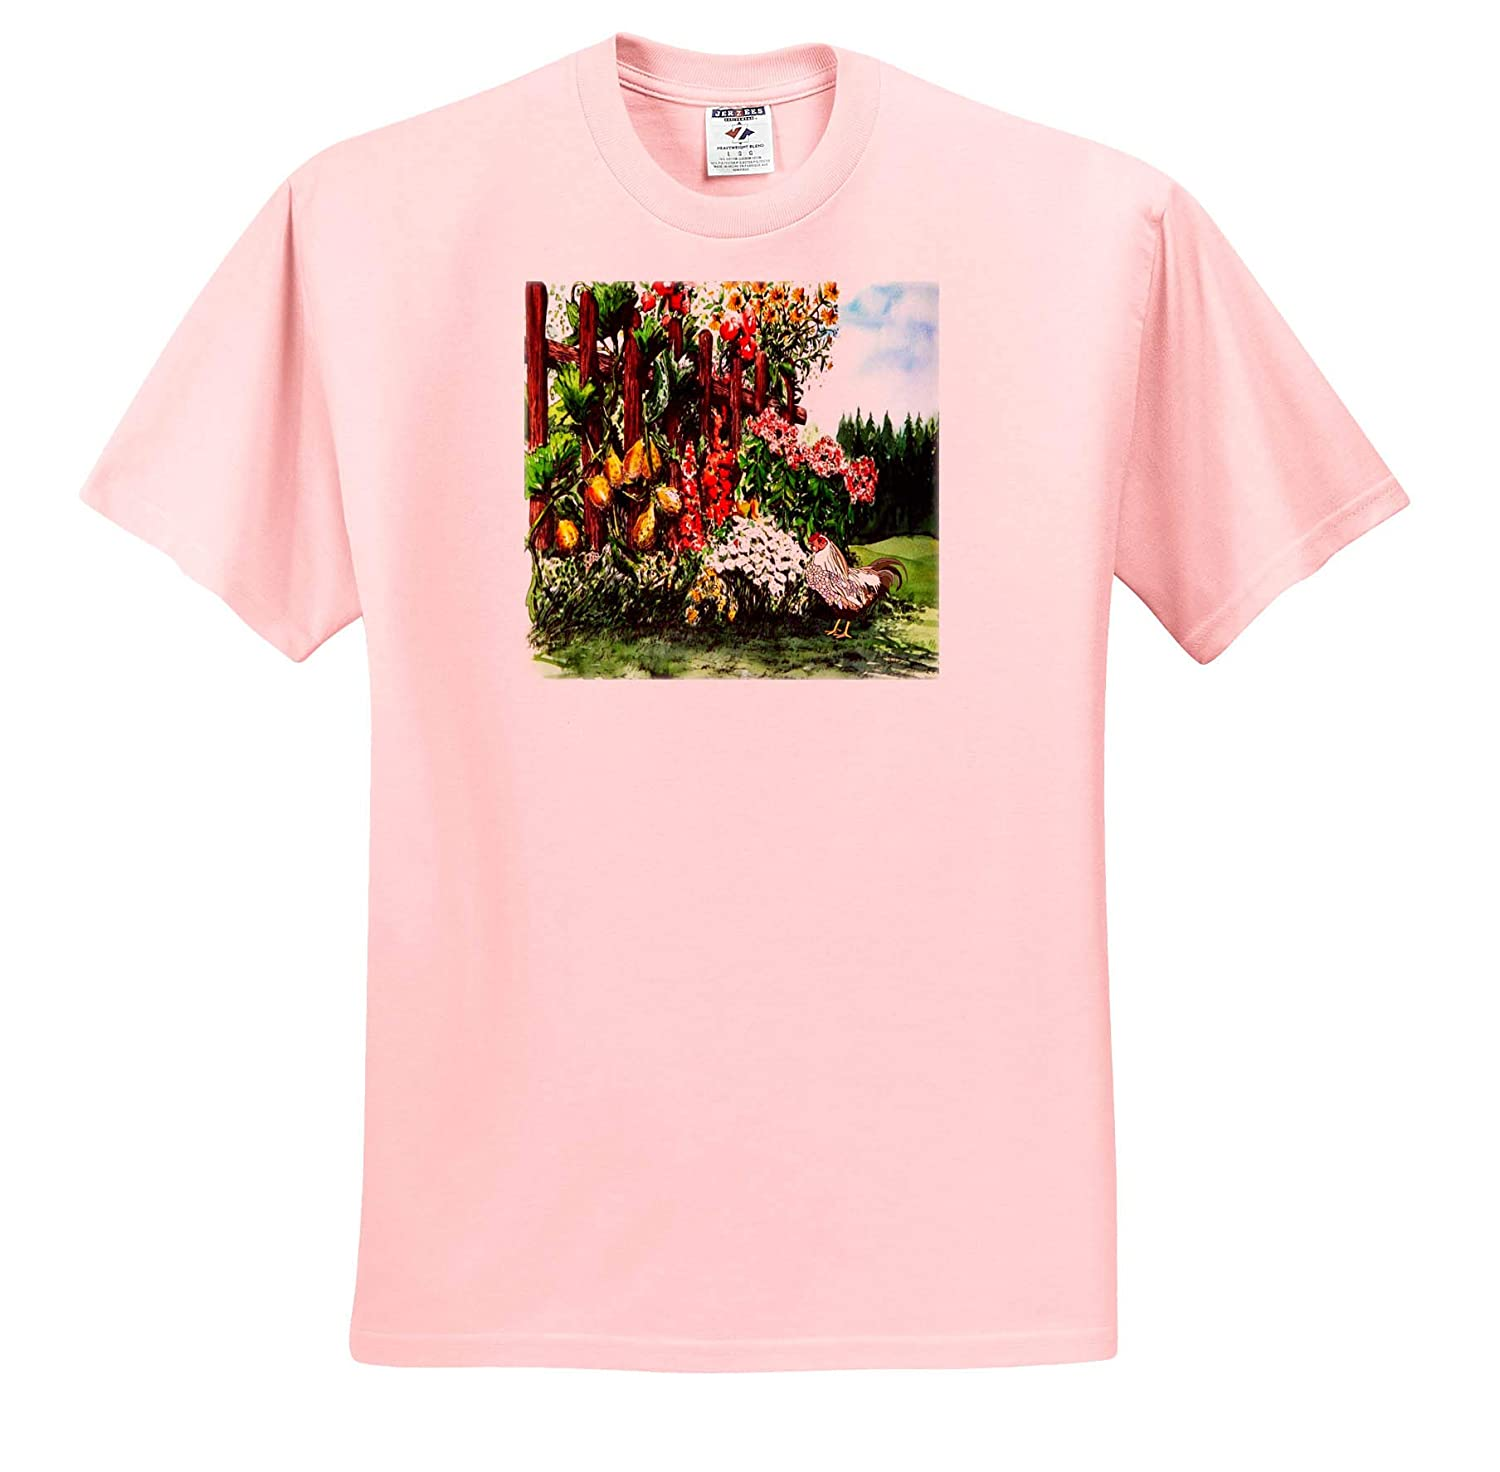 T-Shirts Image of Country Fence with Fruit Flowers and Rooster Painting 3dRose Lens Art by Florene Watercolor Art